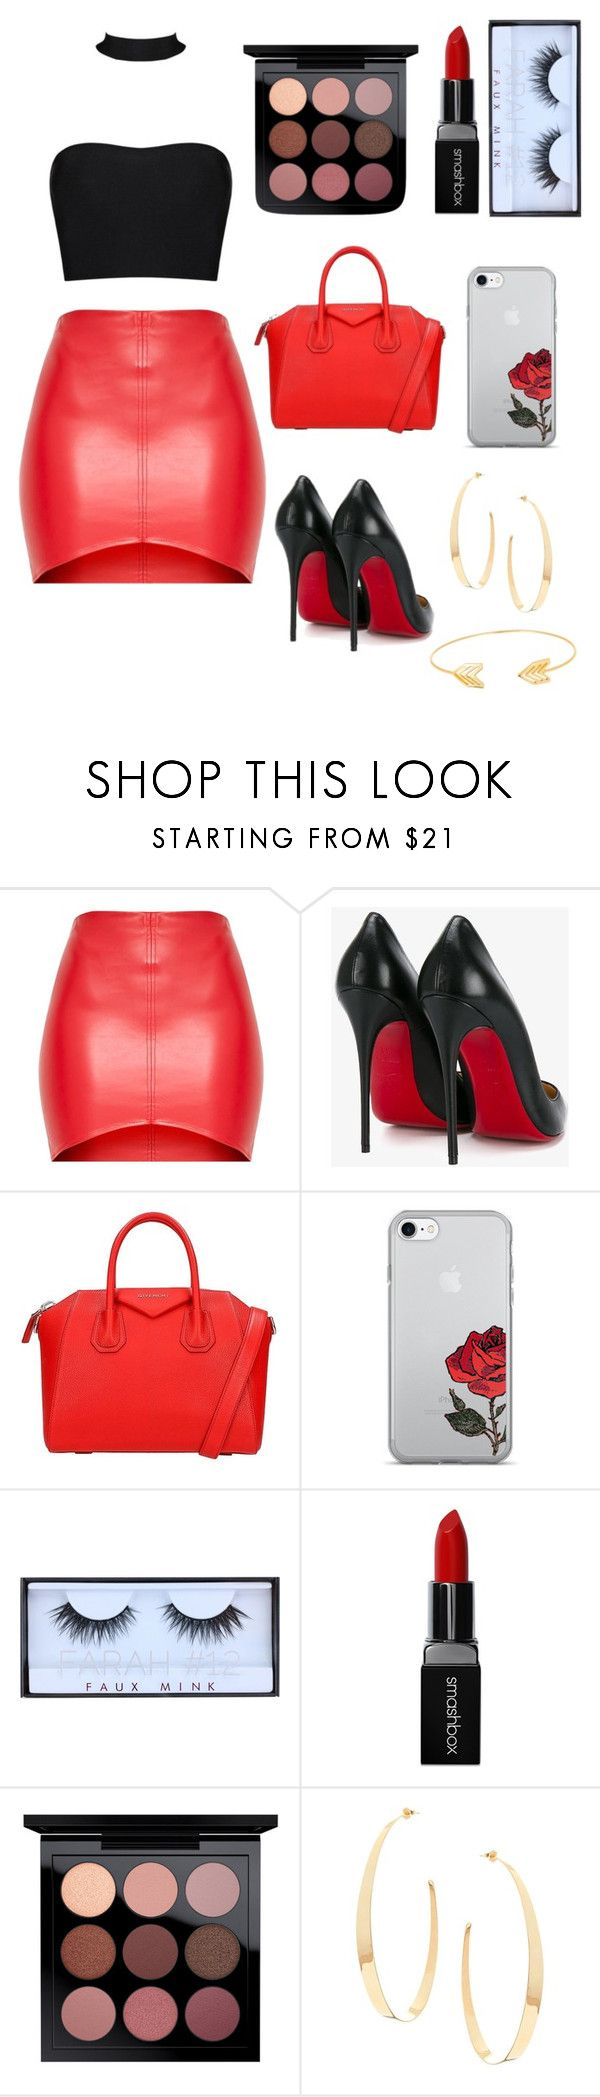 """""""Leather skirts and red lips 💋"""" by fashionqueenie1 ❤ liked on Polyvore featuring Christian Louboutin, Givenchy, Huda Beauty, Smashbox, Lana and Lord & Taylor"""